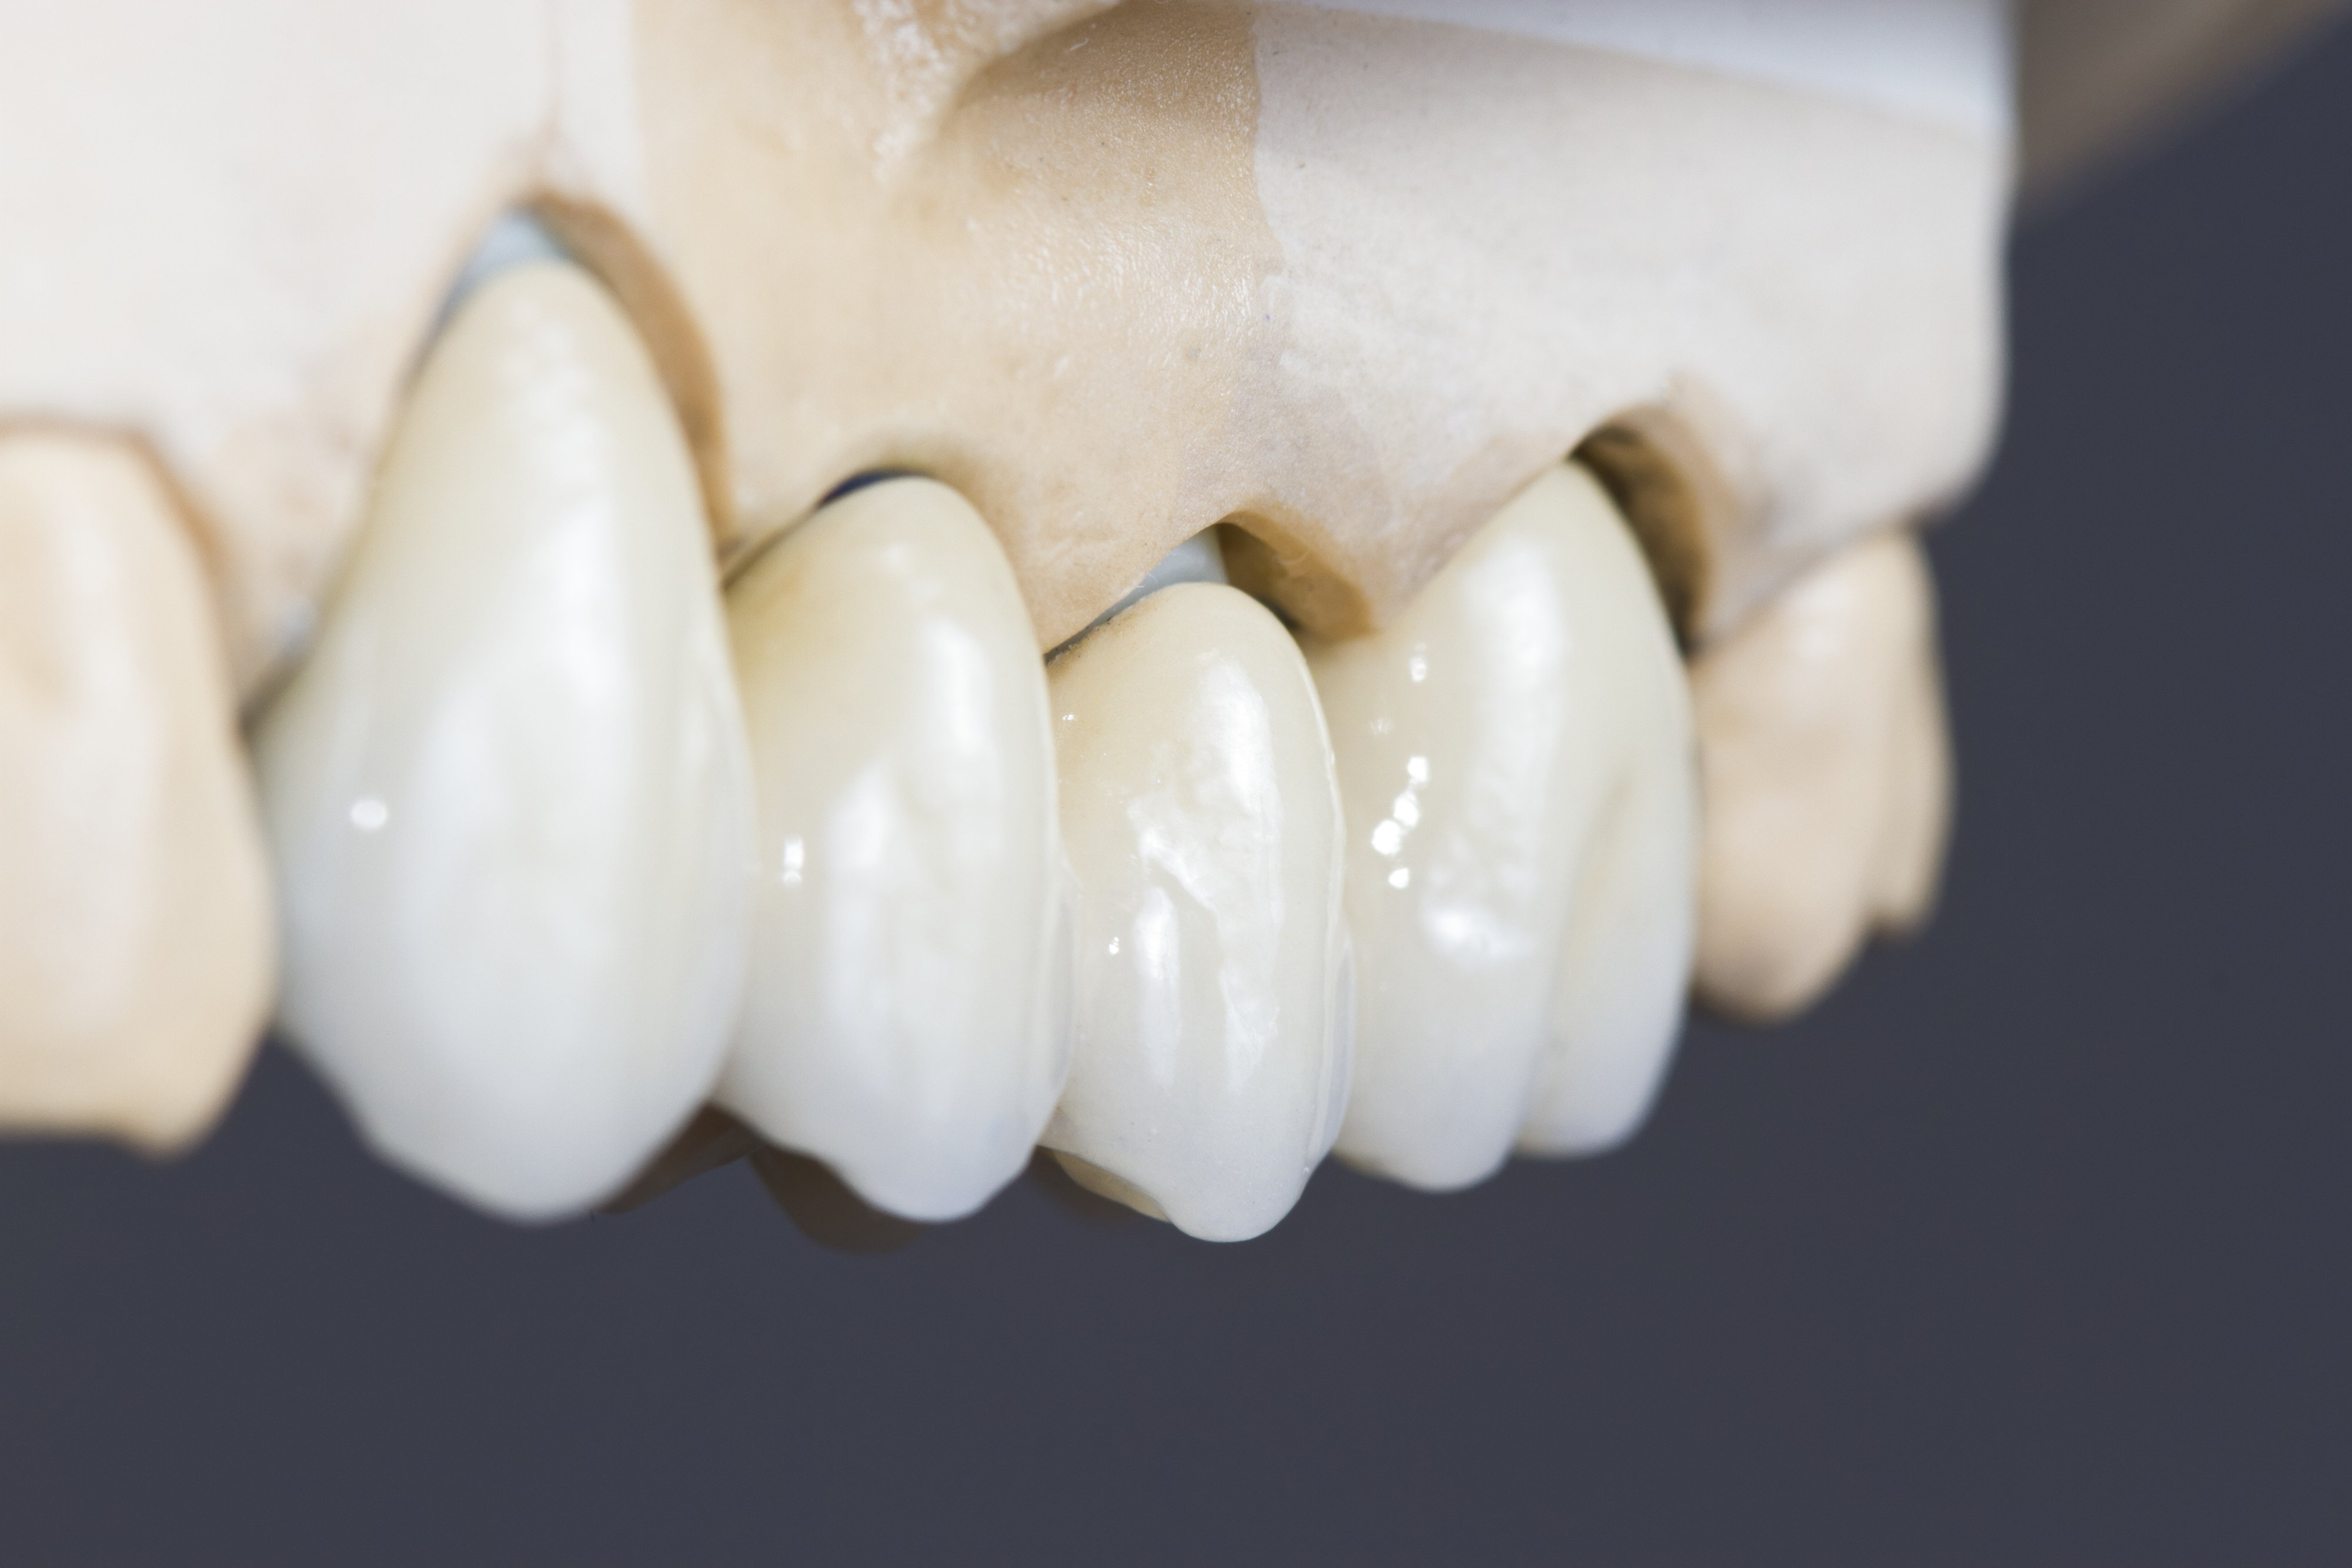 Model of Gums and Teeth